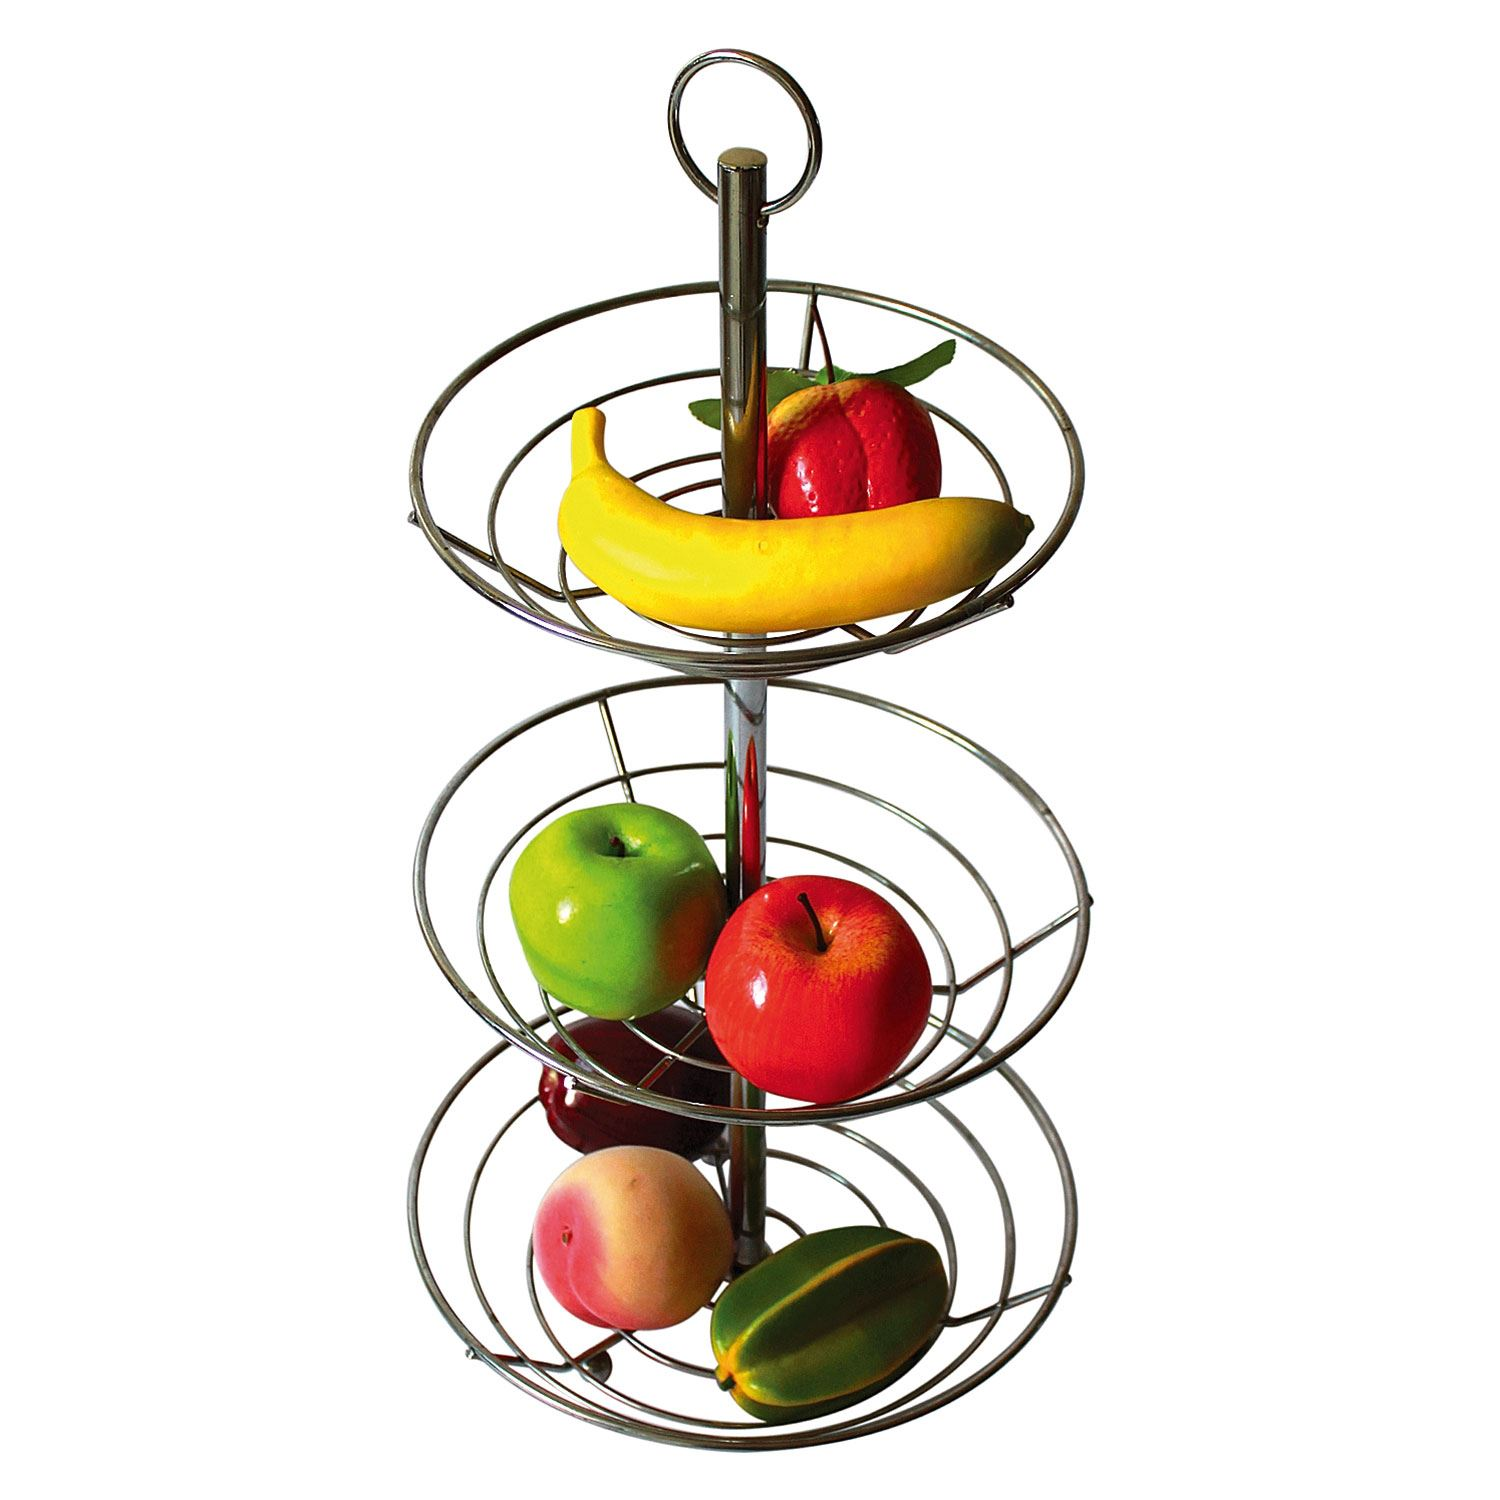 New 2 3 Tier Chrome Fruit Vegetable Basket